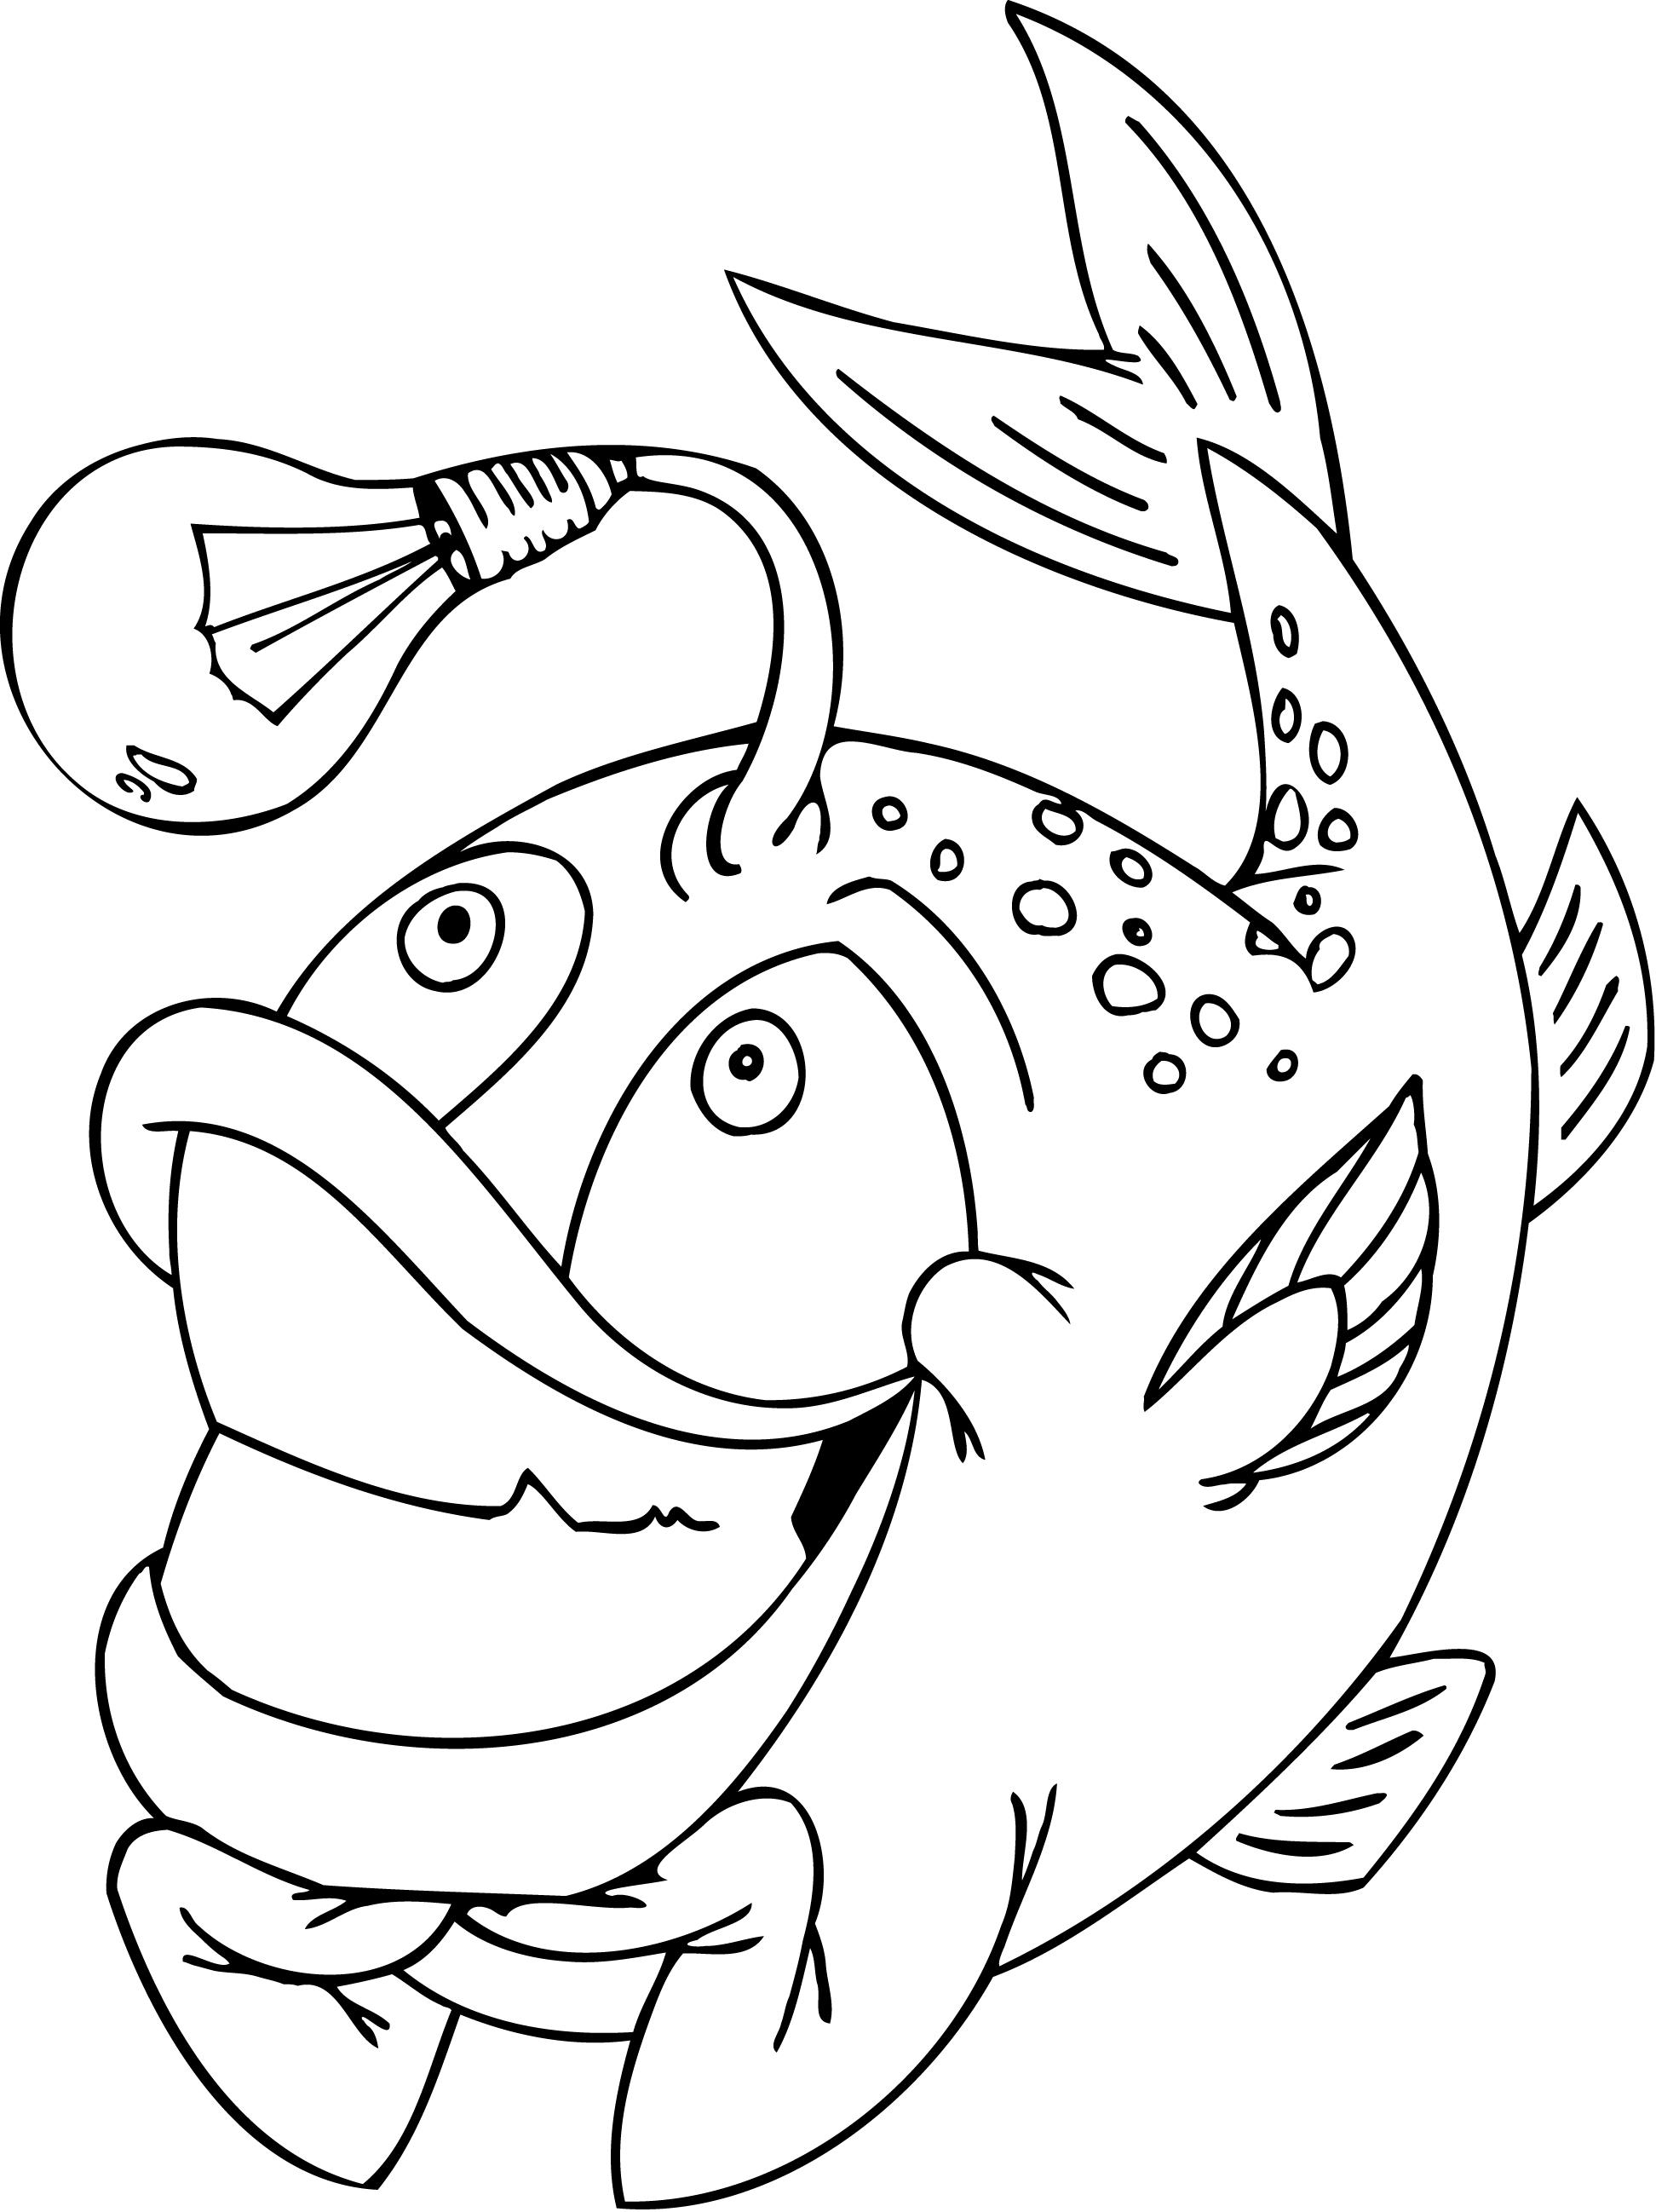 coloring sheets for toddler printable tweety coloring pages for kids cool2bkids coloring sheets for toddler